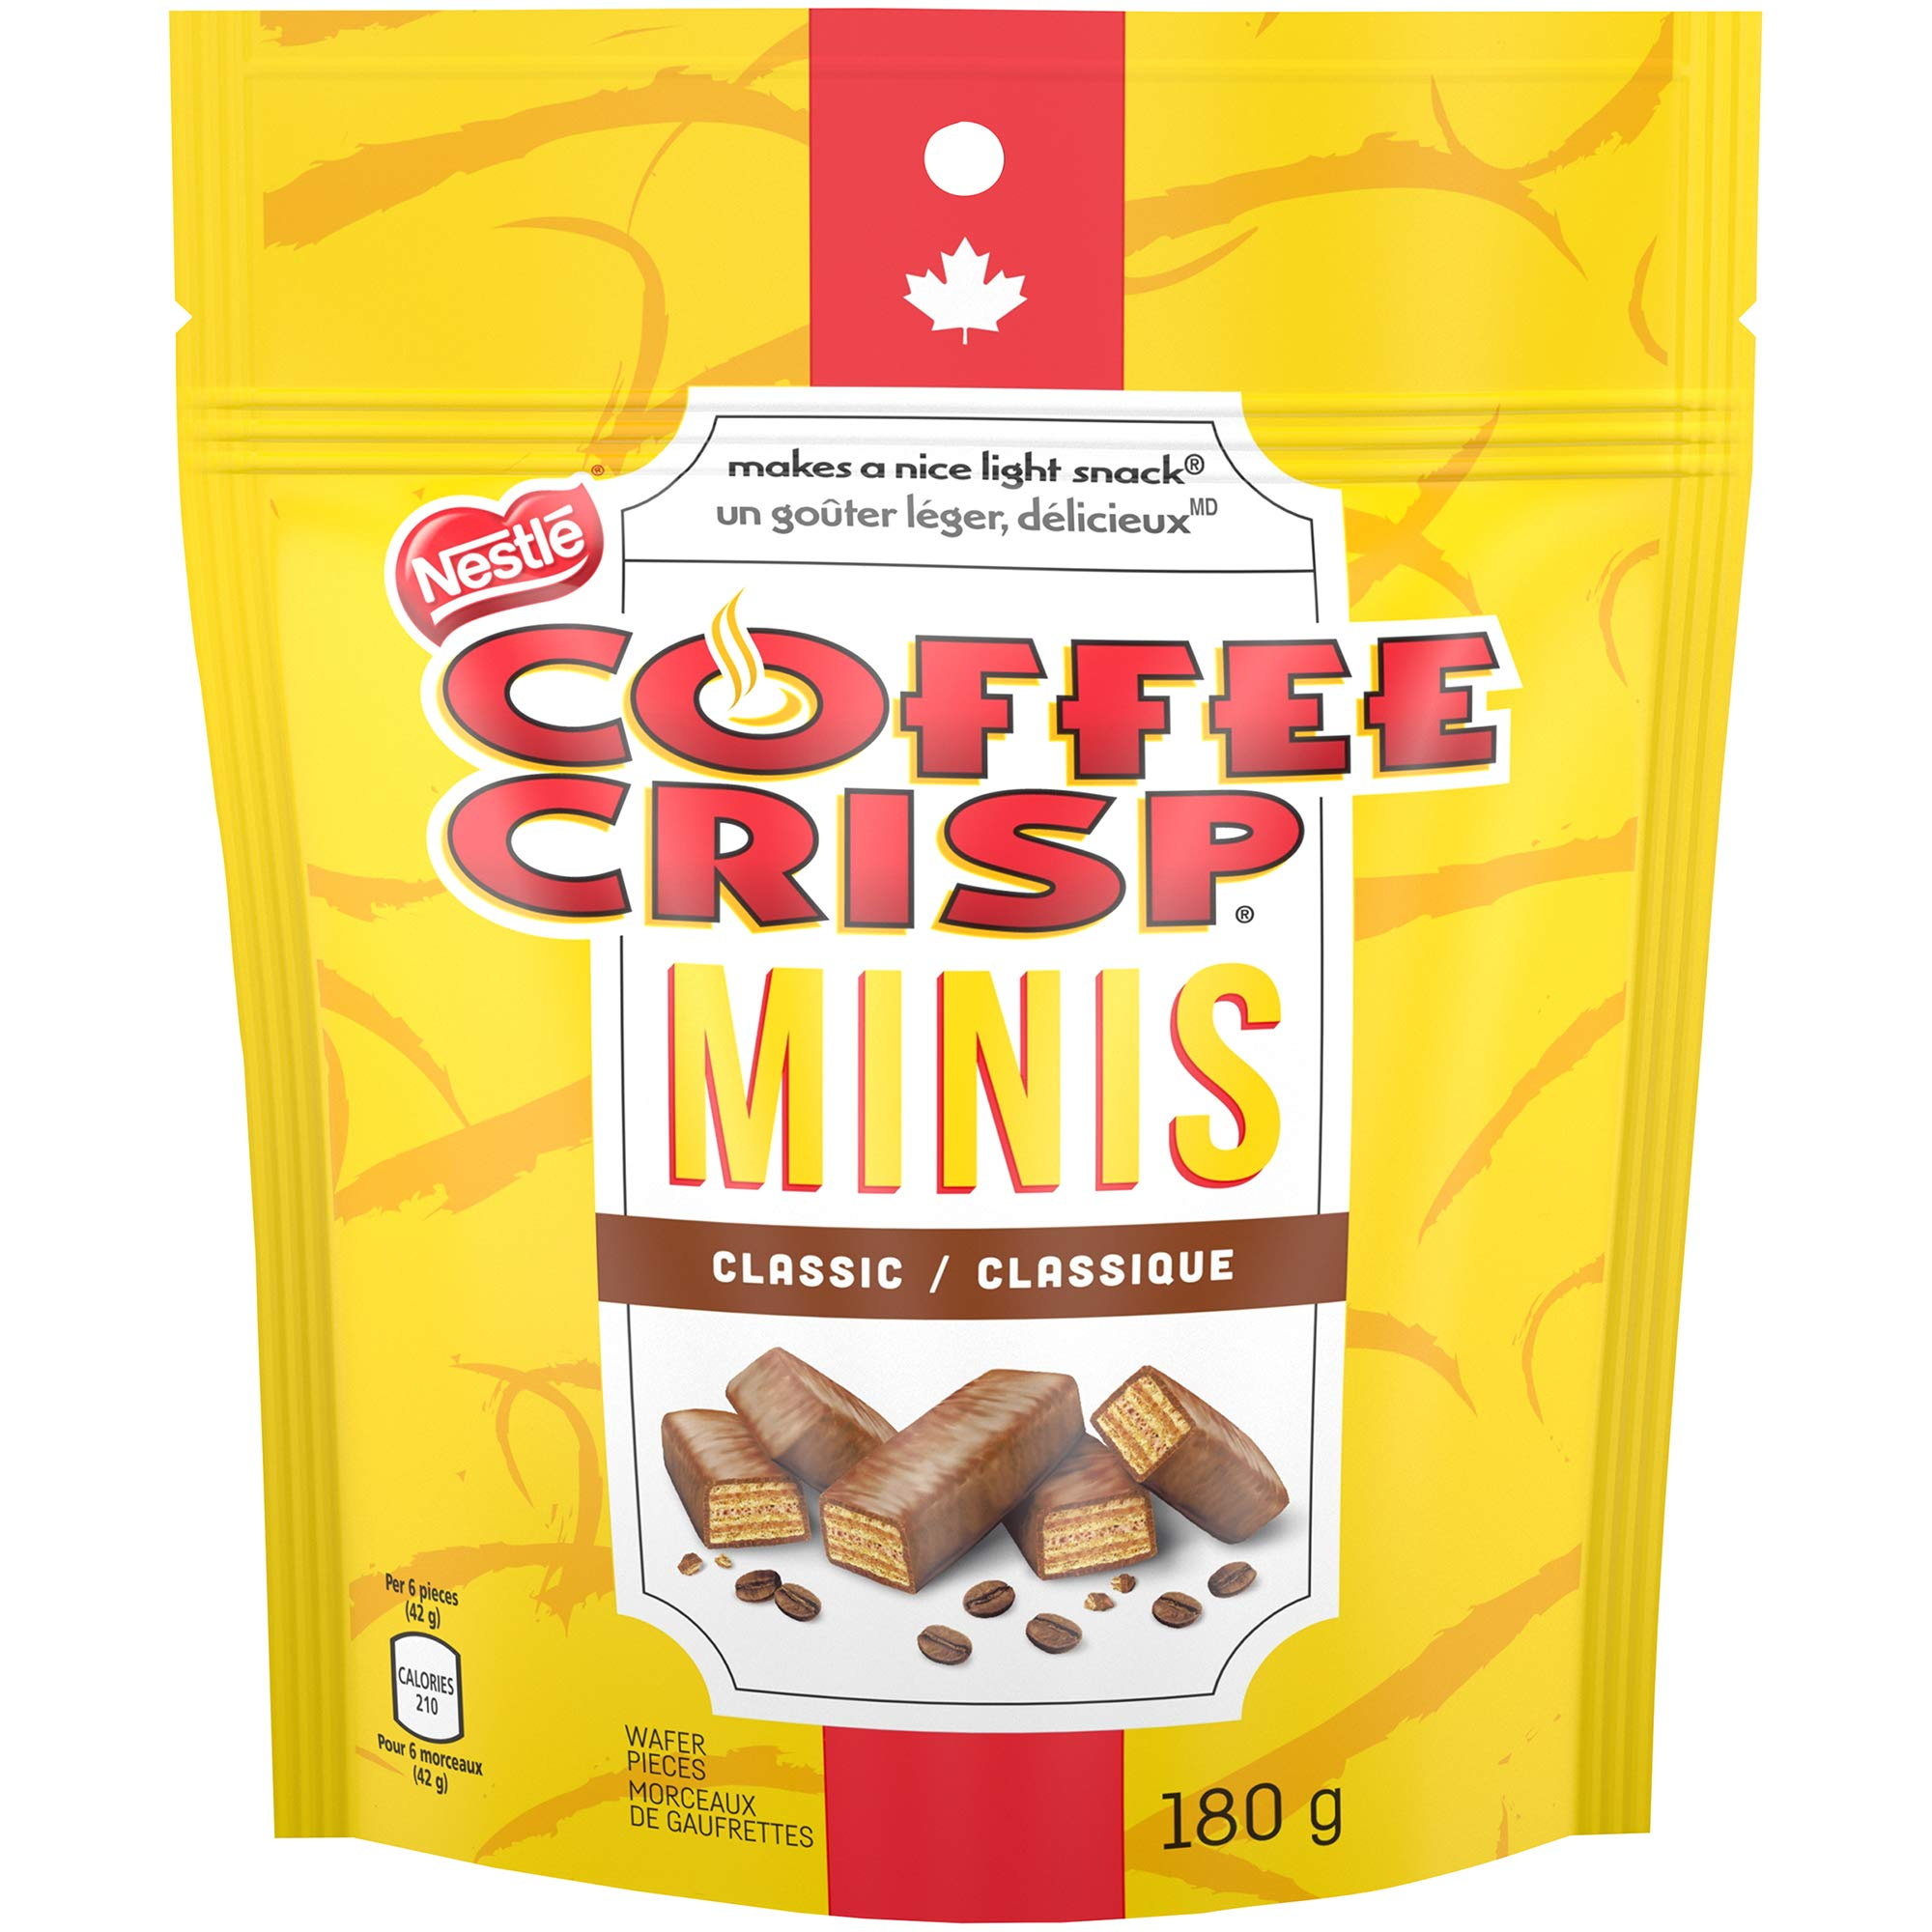 COFFEE CRISP NESTLE Minis, 180g Bag